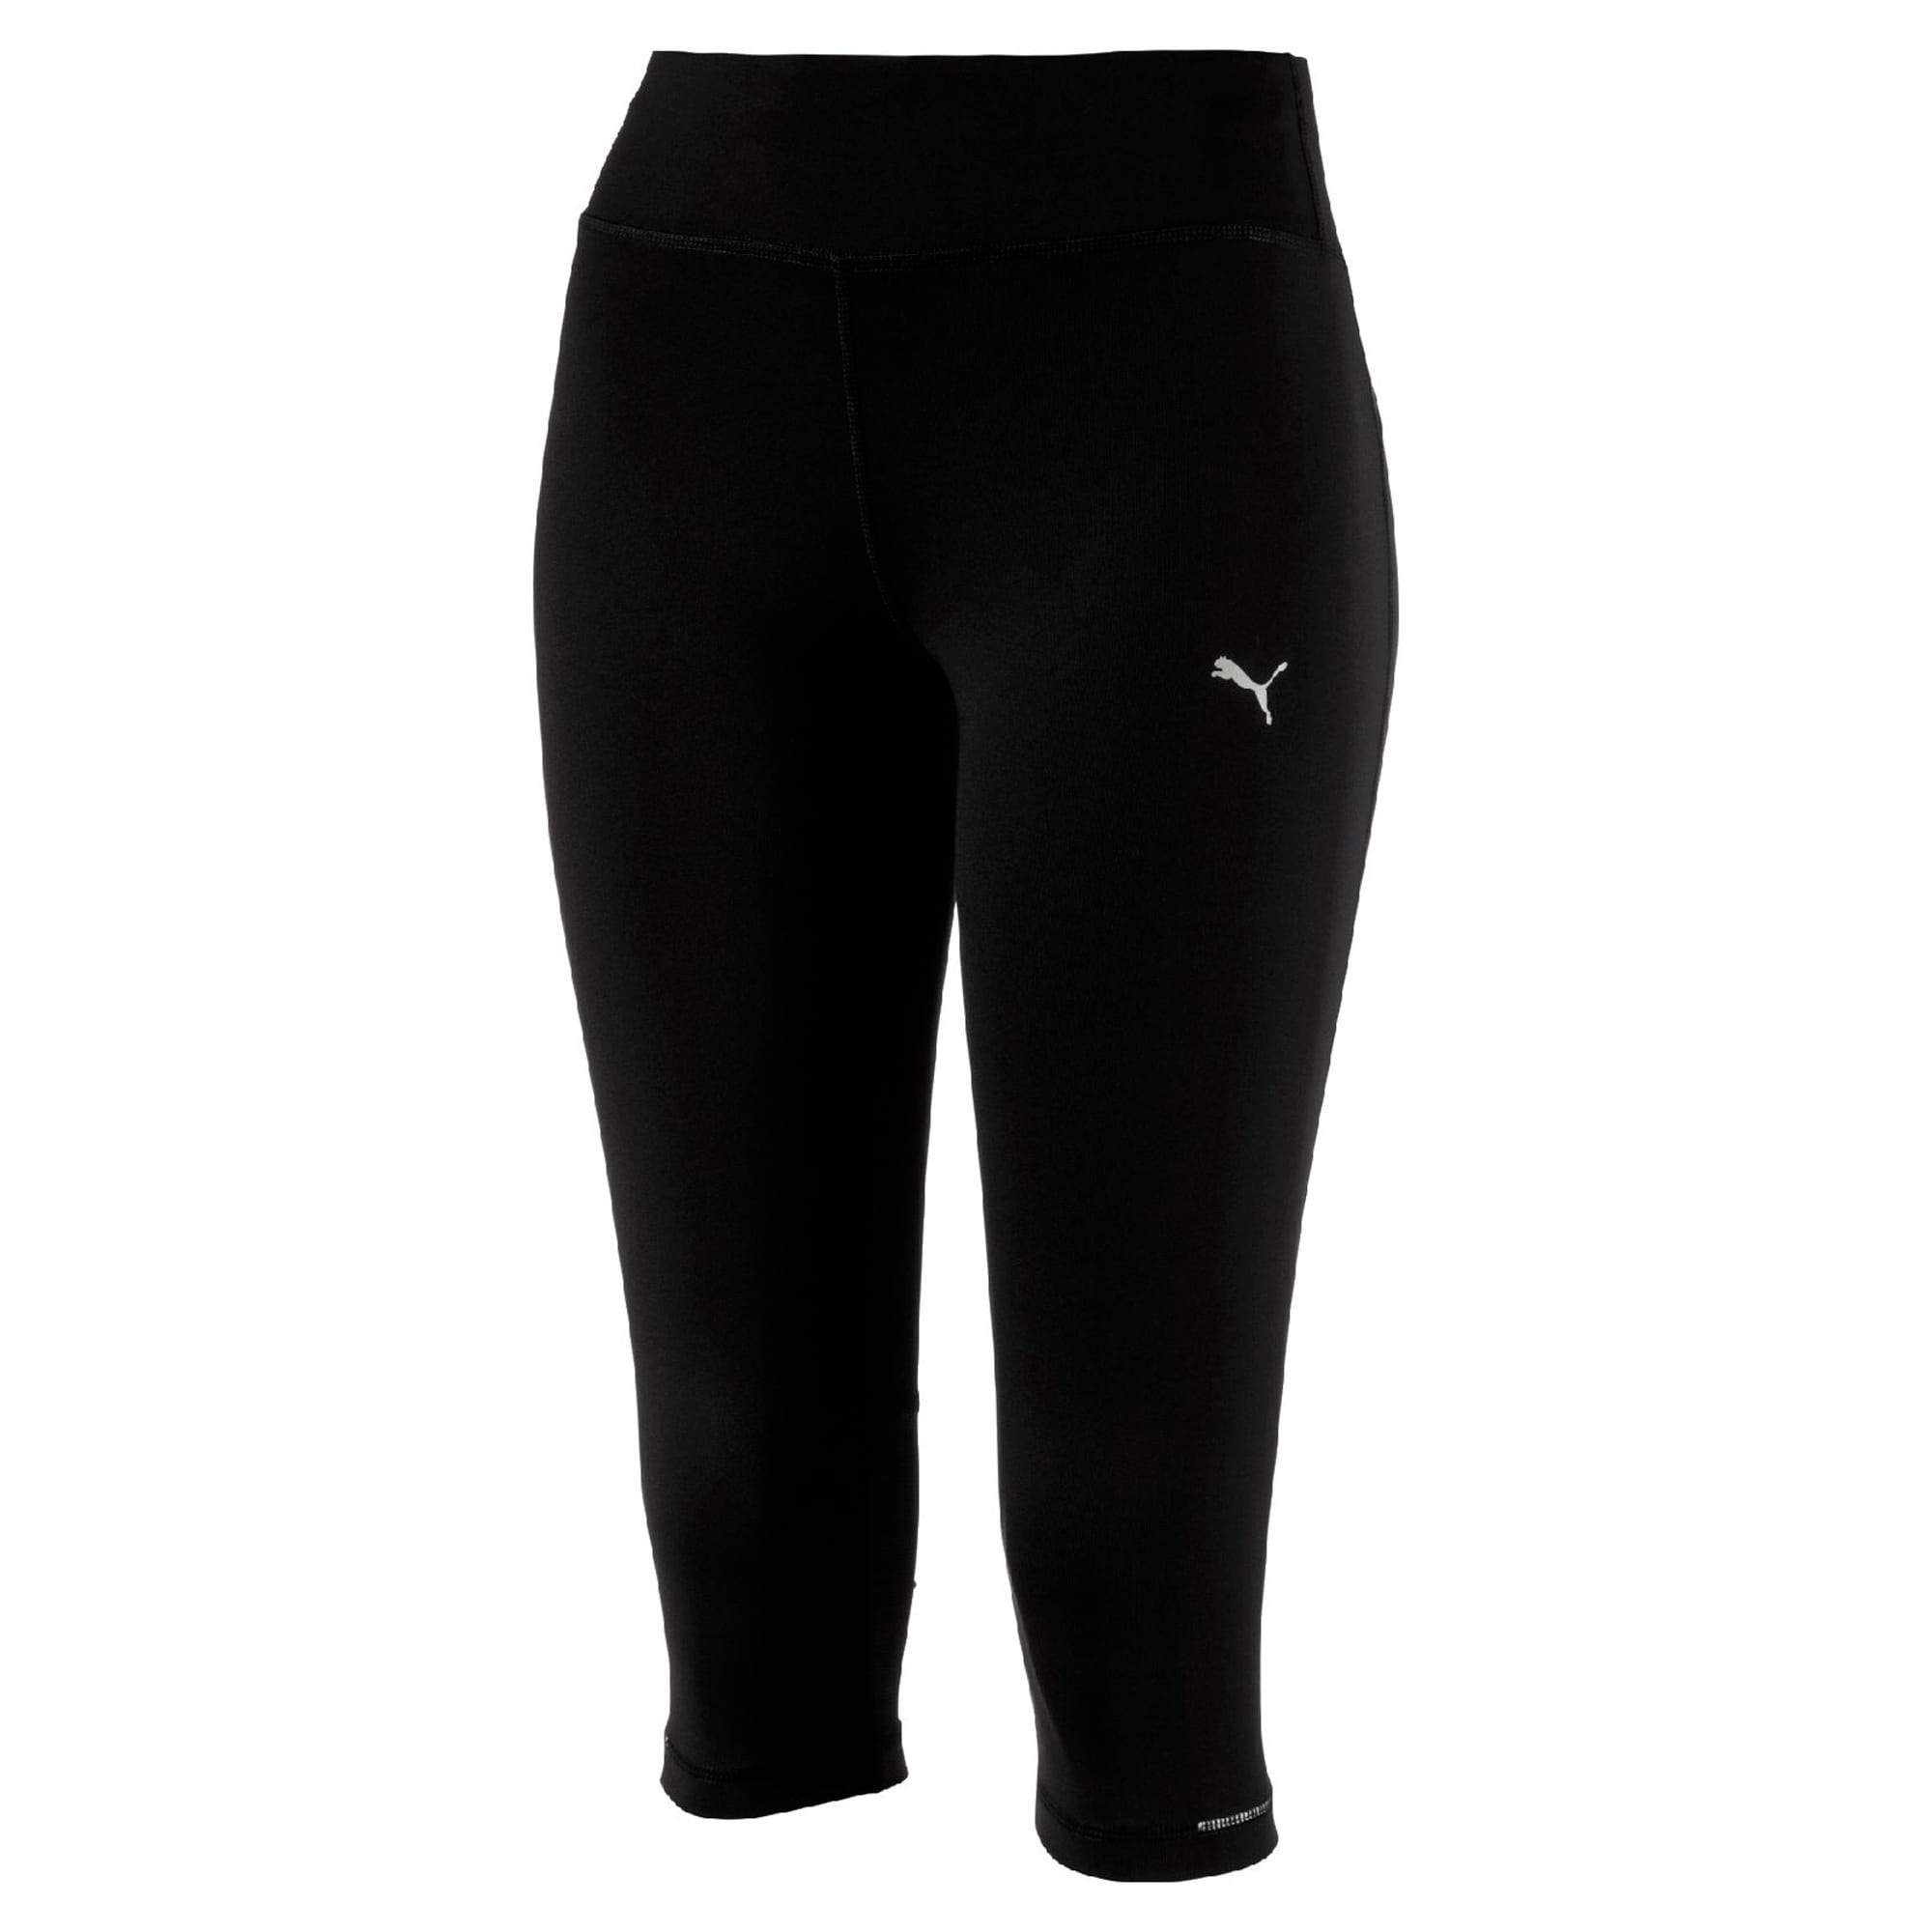 Thumbnail 4 of Running Women's 3/4 Tights, Puma Black, medium-IND